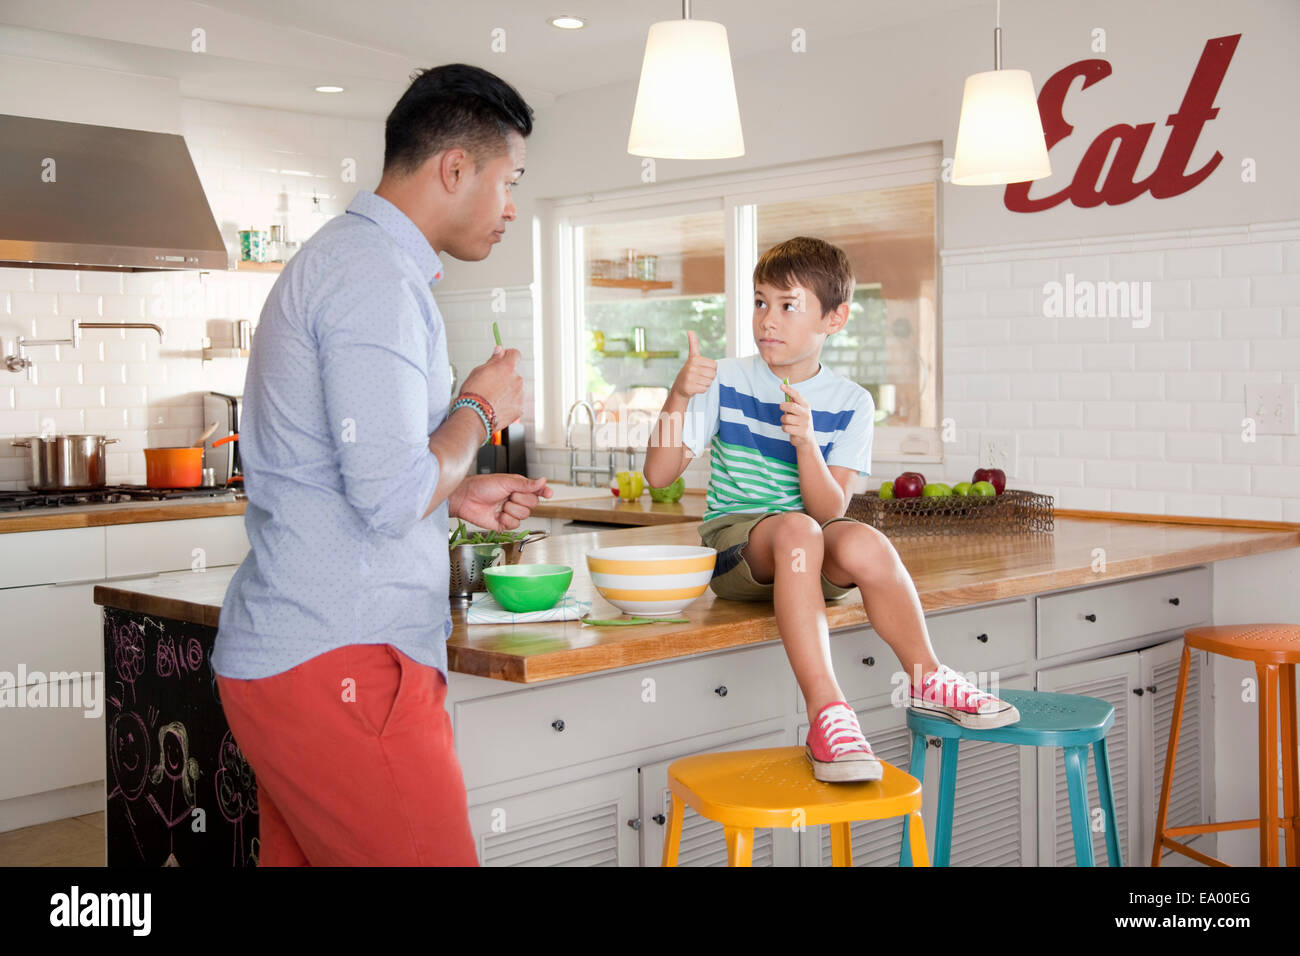 Father and son in kitchen, boy sitting on counter Stock Photo